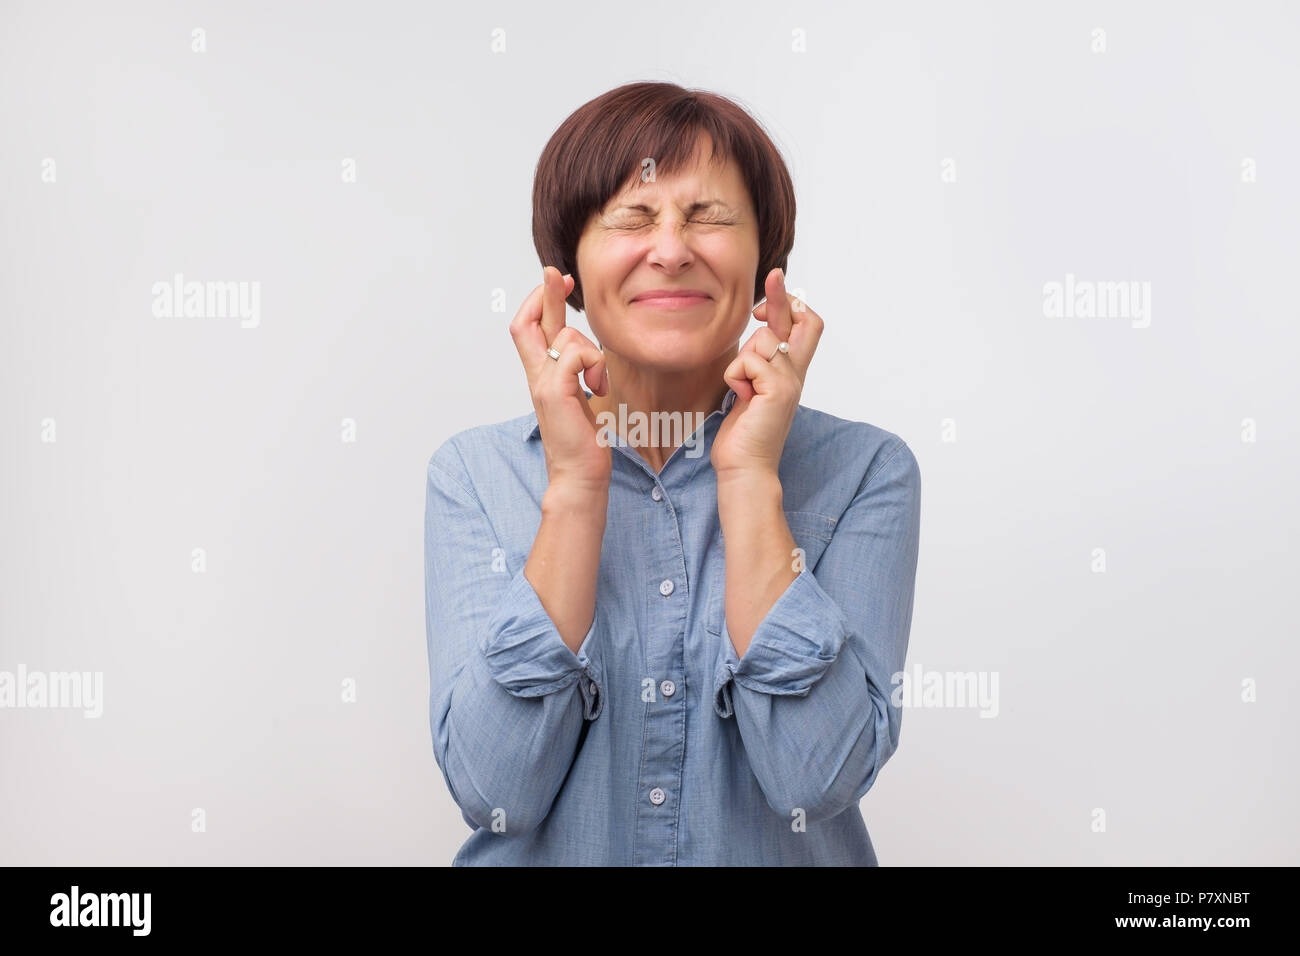 Studio portrait of attractive mature woman having excited, superstitious and naive look, keeping fingers crossed - Stock Image